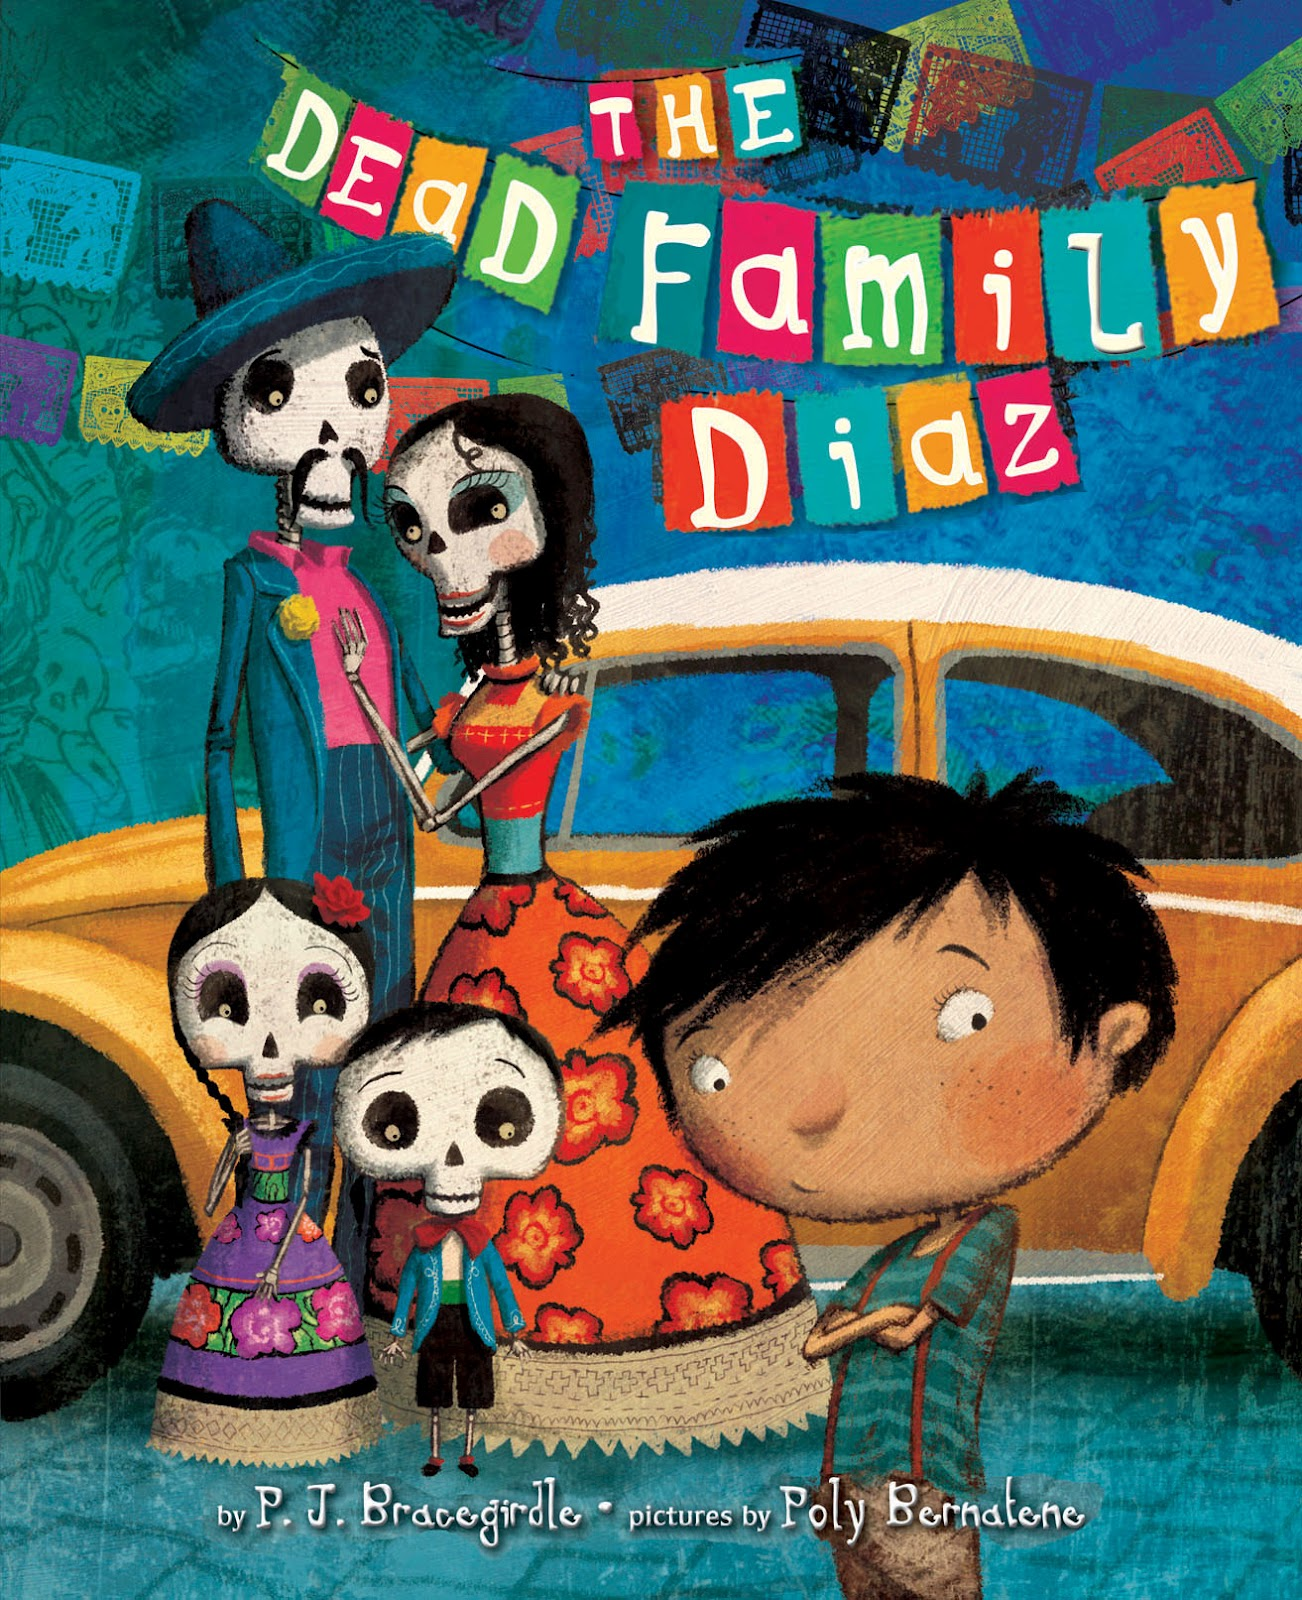 """The Dead family Diaz"